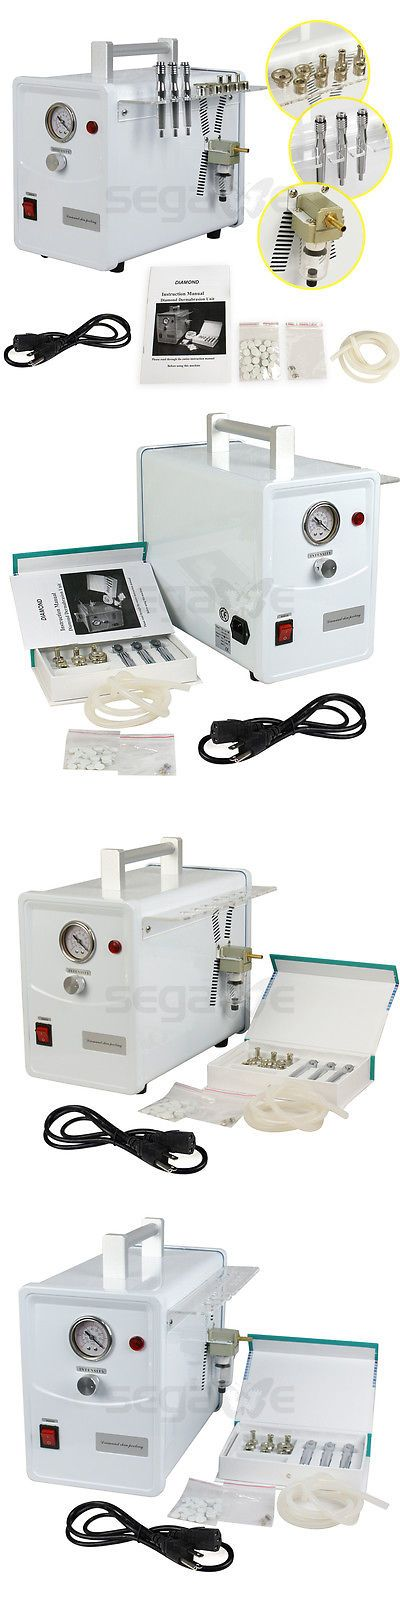 Microdermabrasion Tools: Pro Diamond Microdermabrasion Dermabrasion Facial Peel Vacuum Spray Machine -> BUY IT NOW ONLY: $138.99 on eBay!